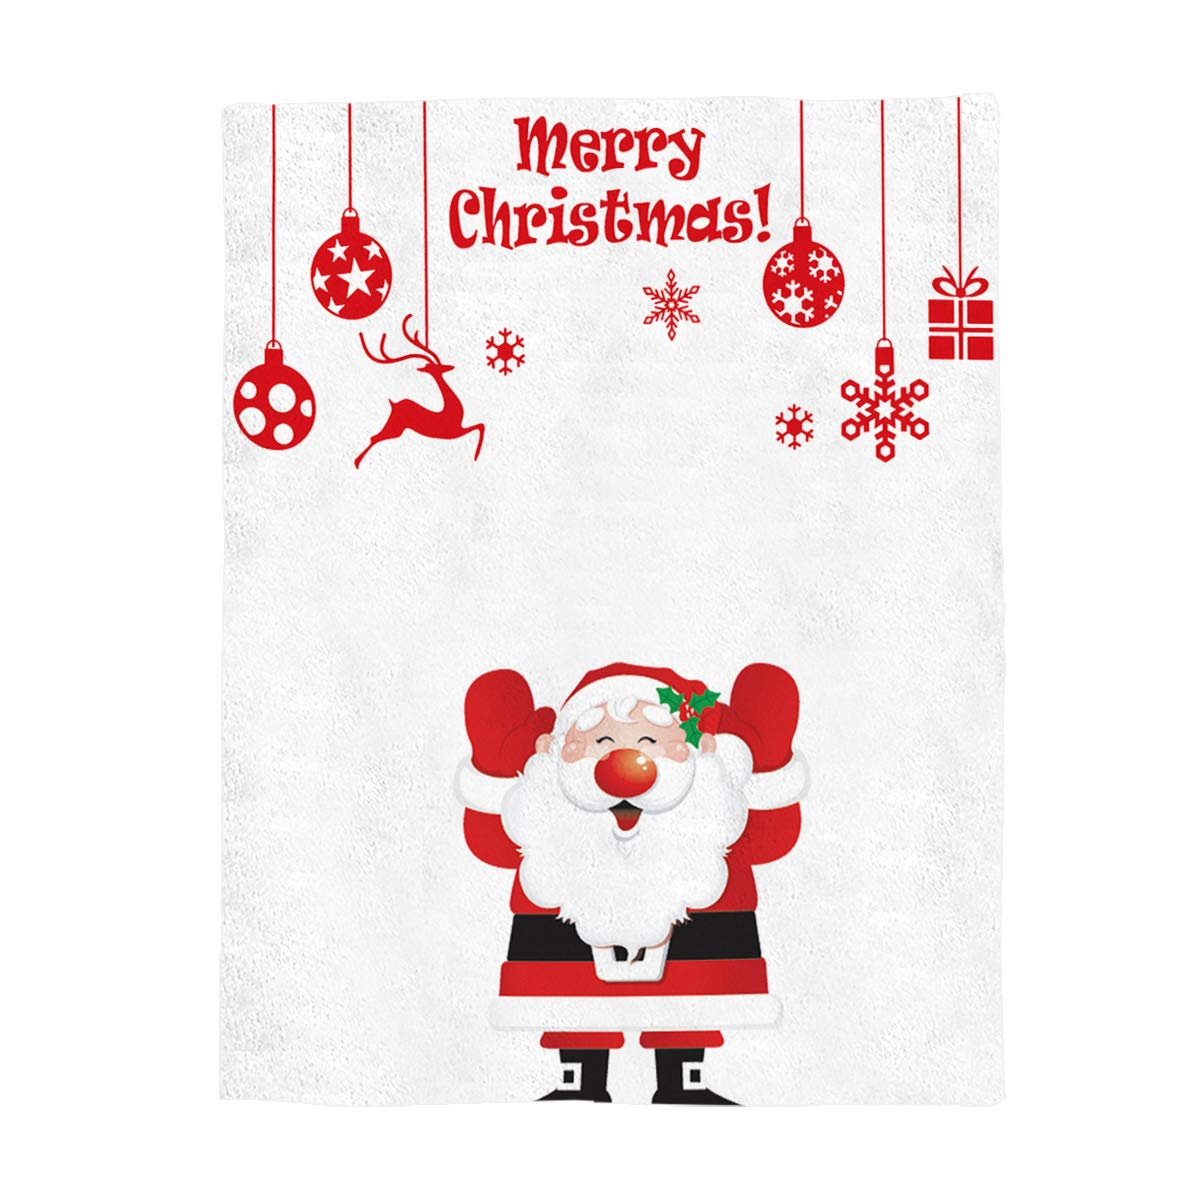 Merry Christmasyag6611 49x59inch=125x150cm YEHO Art Gallery Flannel Fleece Bed Blanket Soft ThrowBlankets for Adult Kids Girls Boys,Cute Christmas Santa Claus Pattern,Lightweight Blankets for Bedroom Living Room Sofa Couch,49x59inch